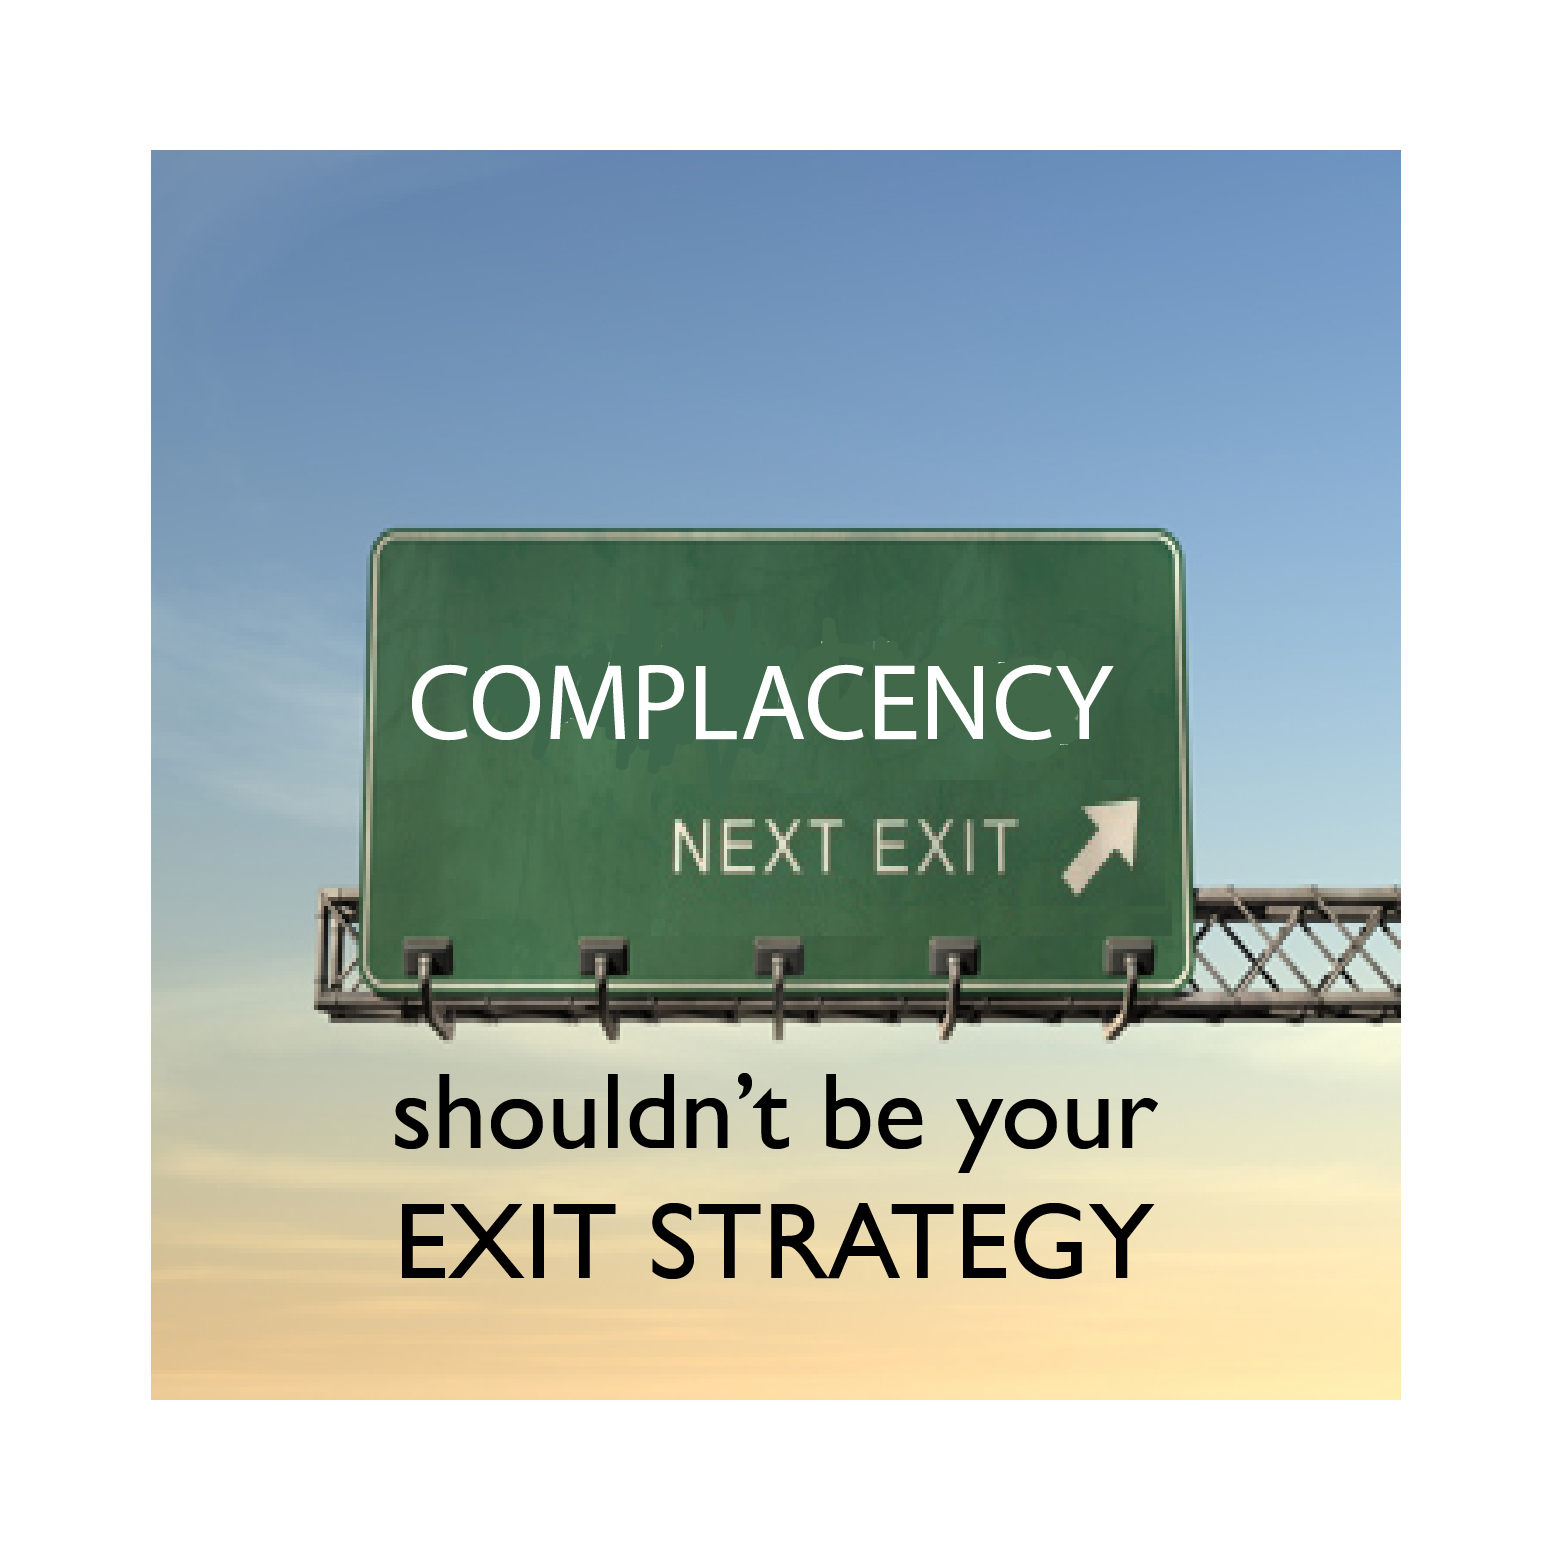 Complacency should not be your Exit Strategy